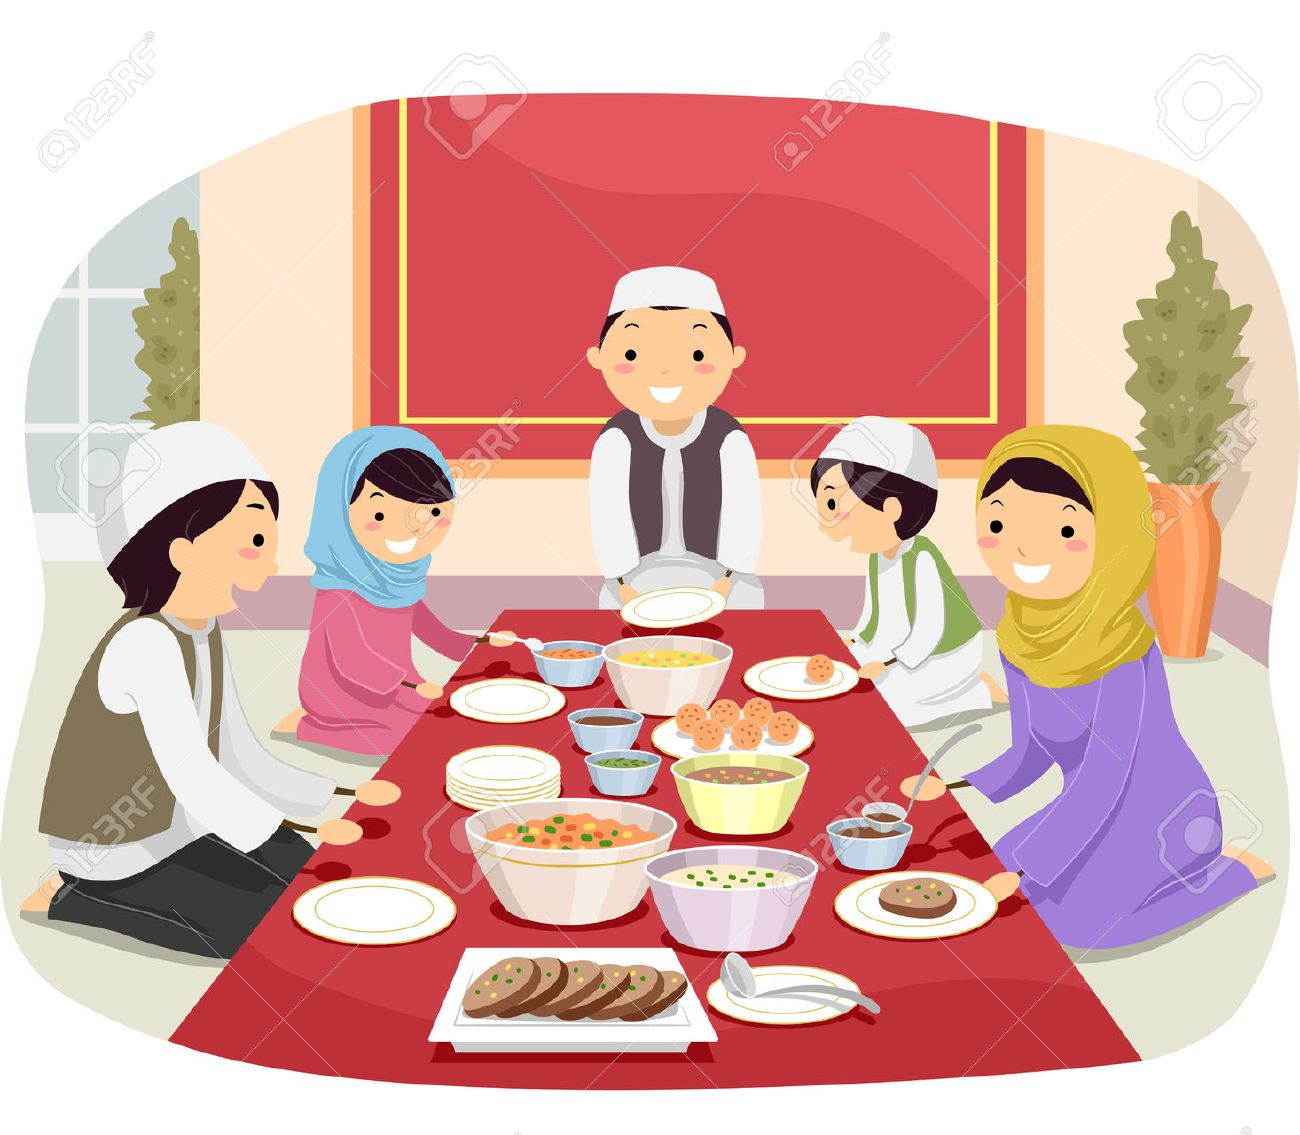 Stickman Illustration Of A Muslim Family Eating Together Stock